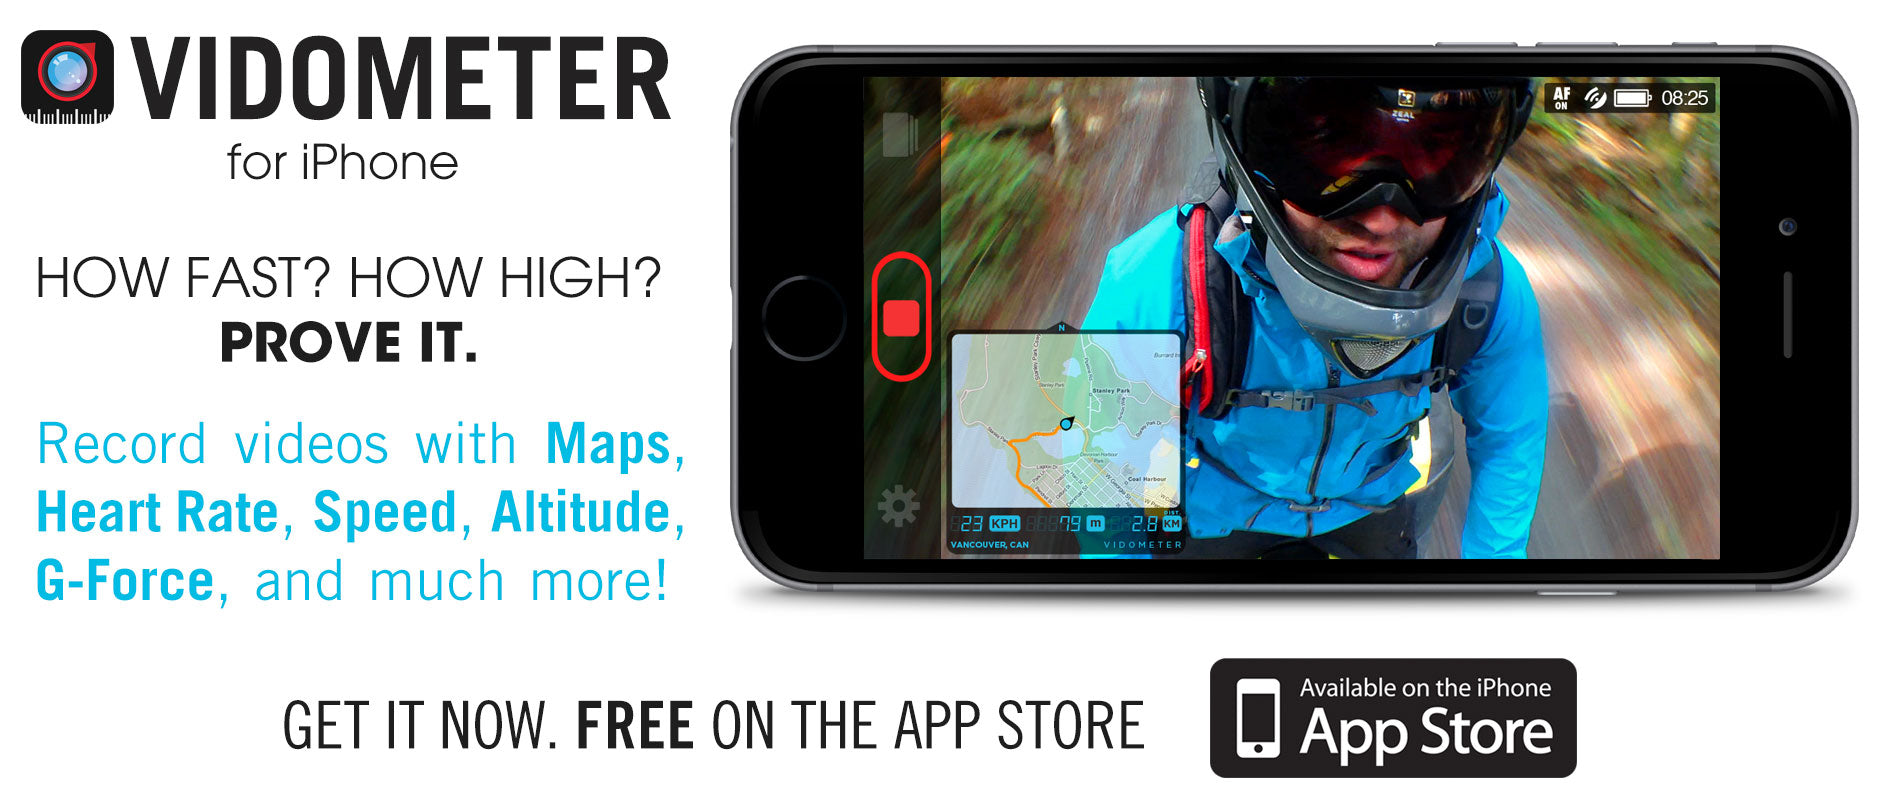 Vidometer - iPhone GPS Video Recorder App - Map, Speed